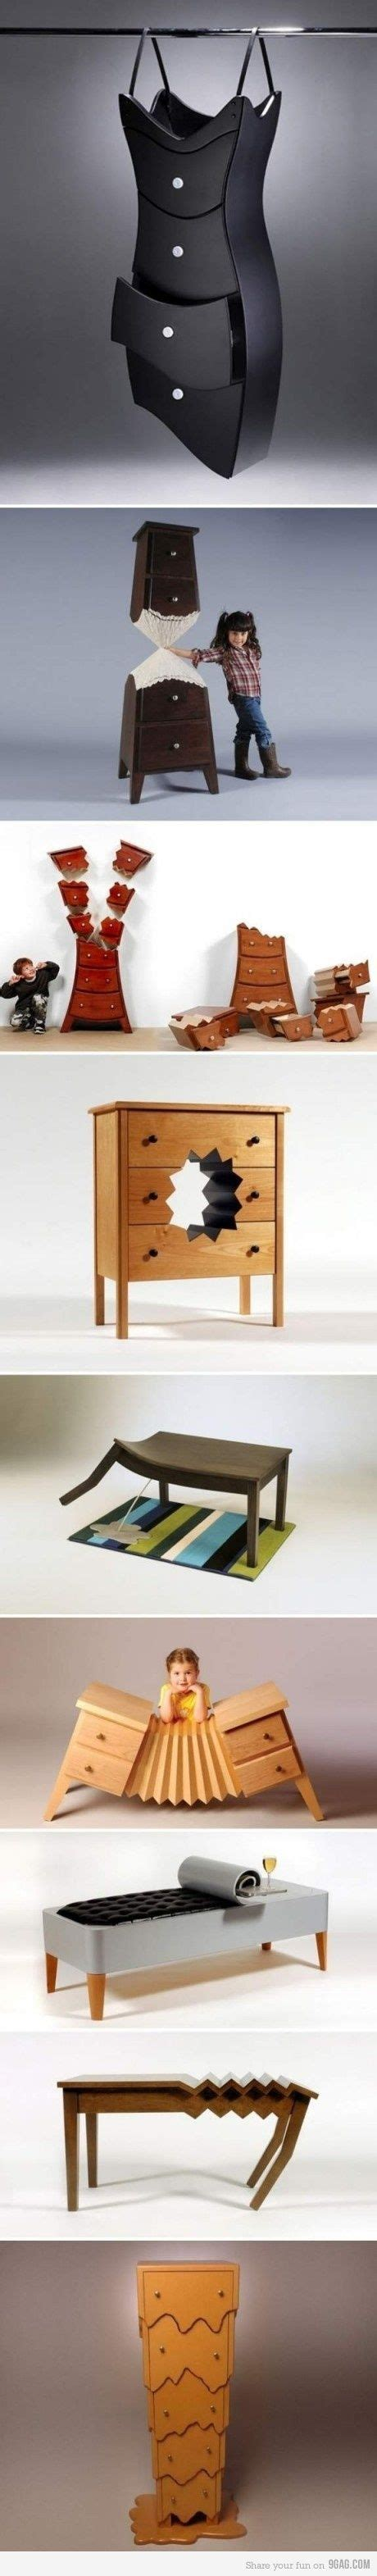 quirky home decor websites india creative furniture websites weird and unusual ideas for